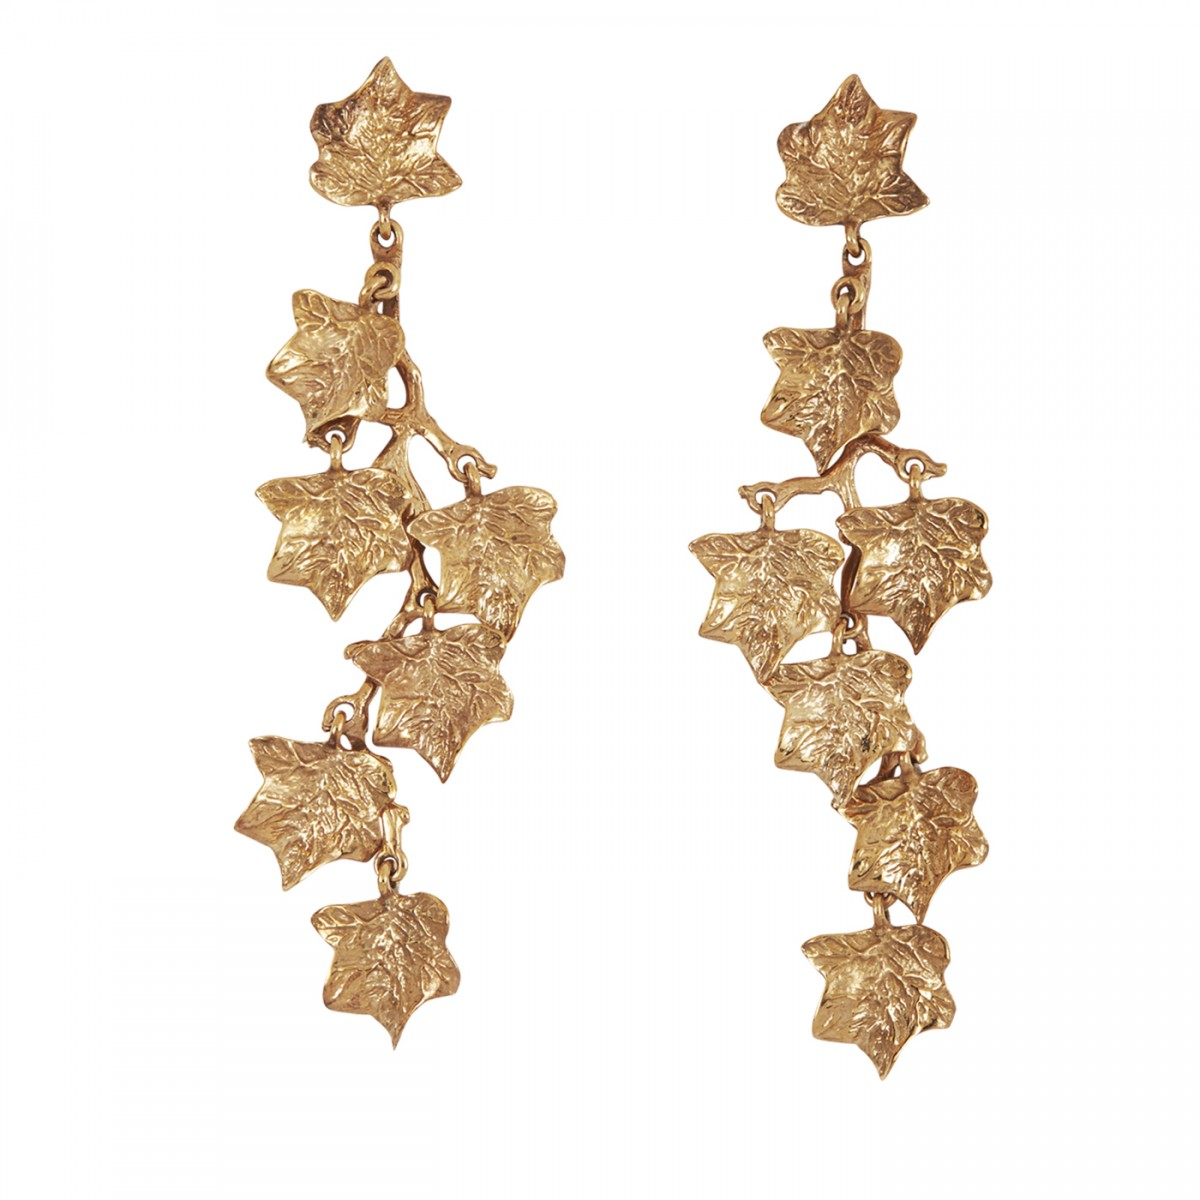 Madina Visconti – Ivy Vine Earrings – Available on www.artemest.com